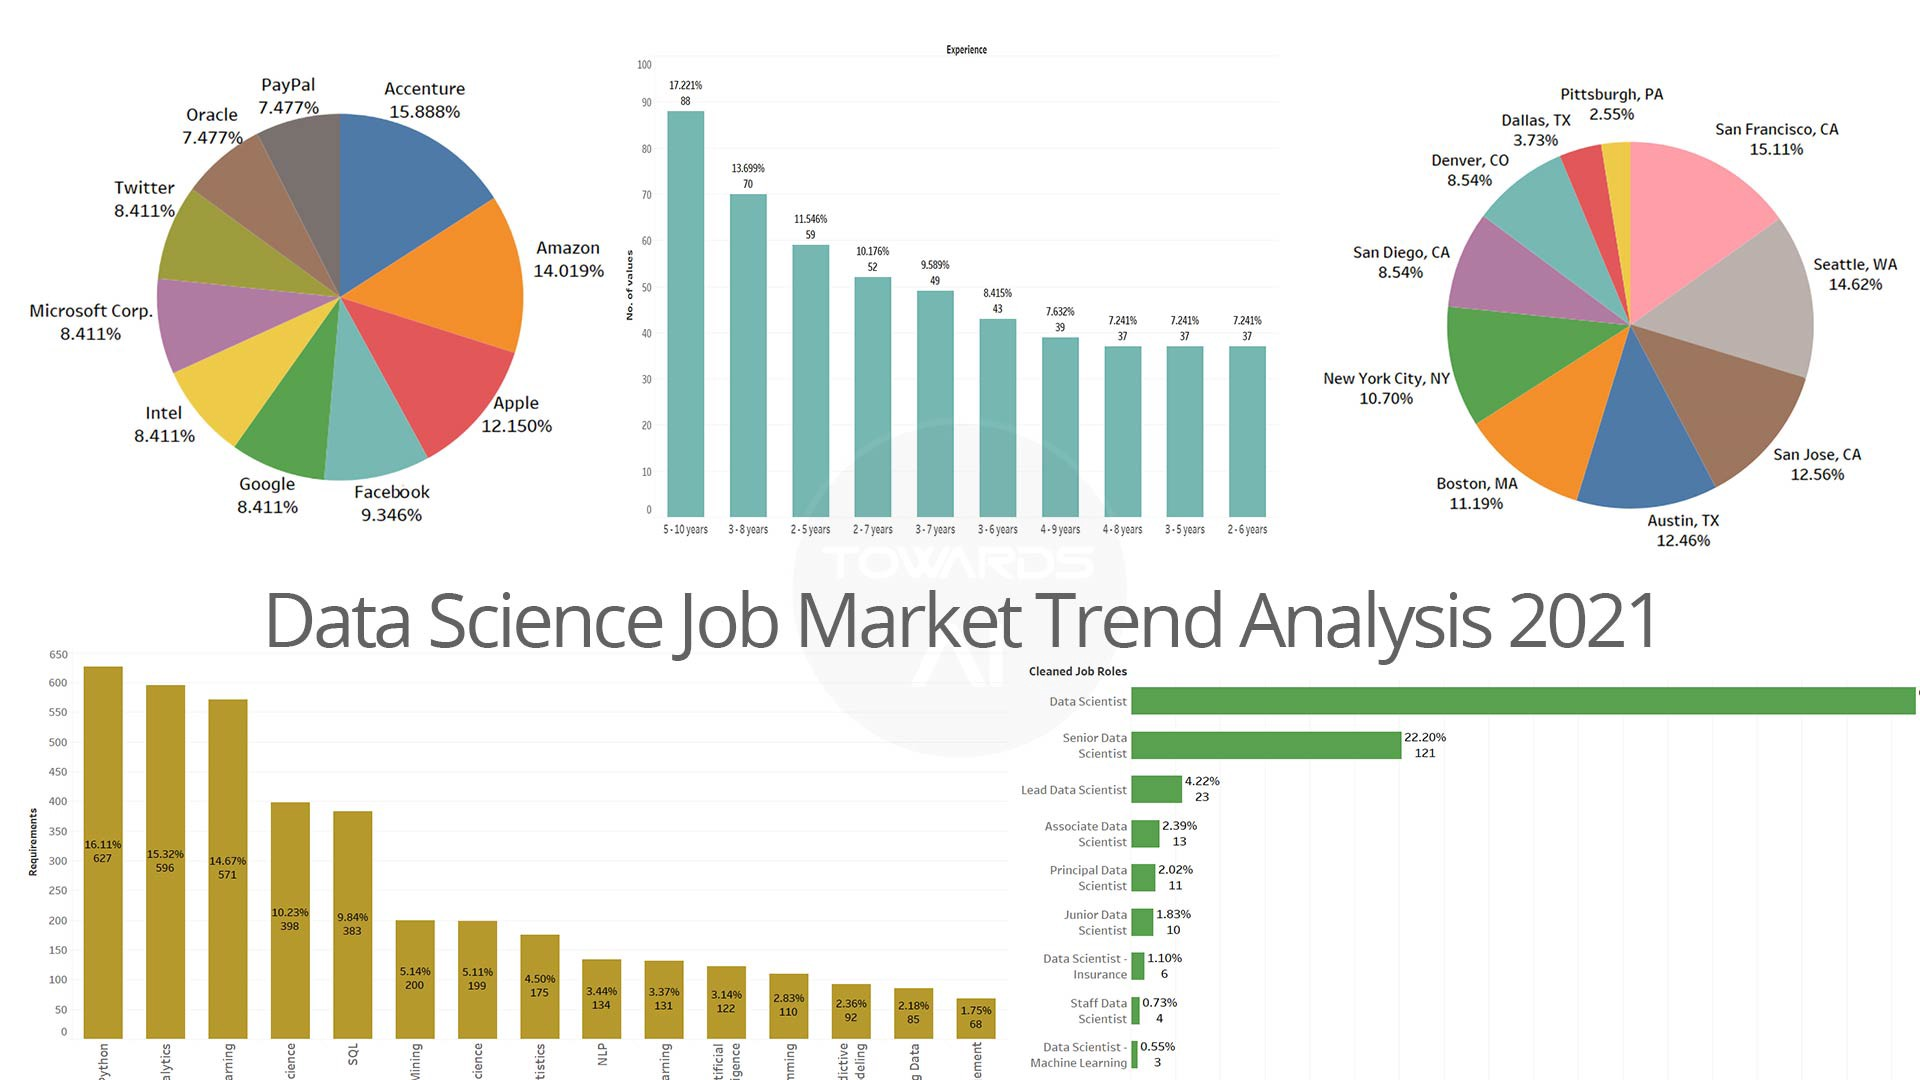 Data Science Job Market Trend Analysis for 2021